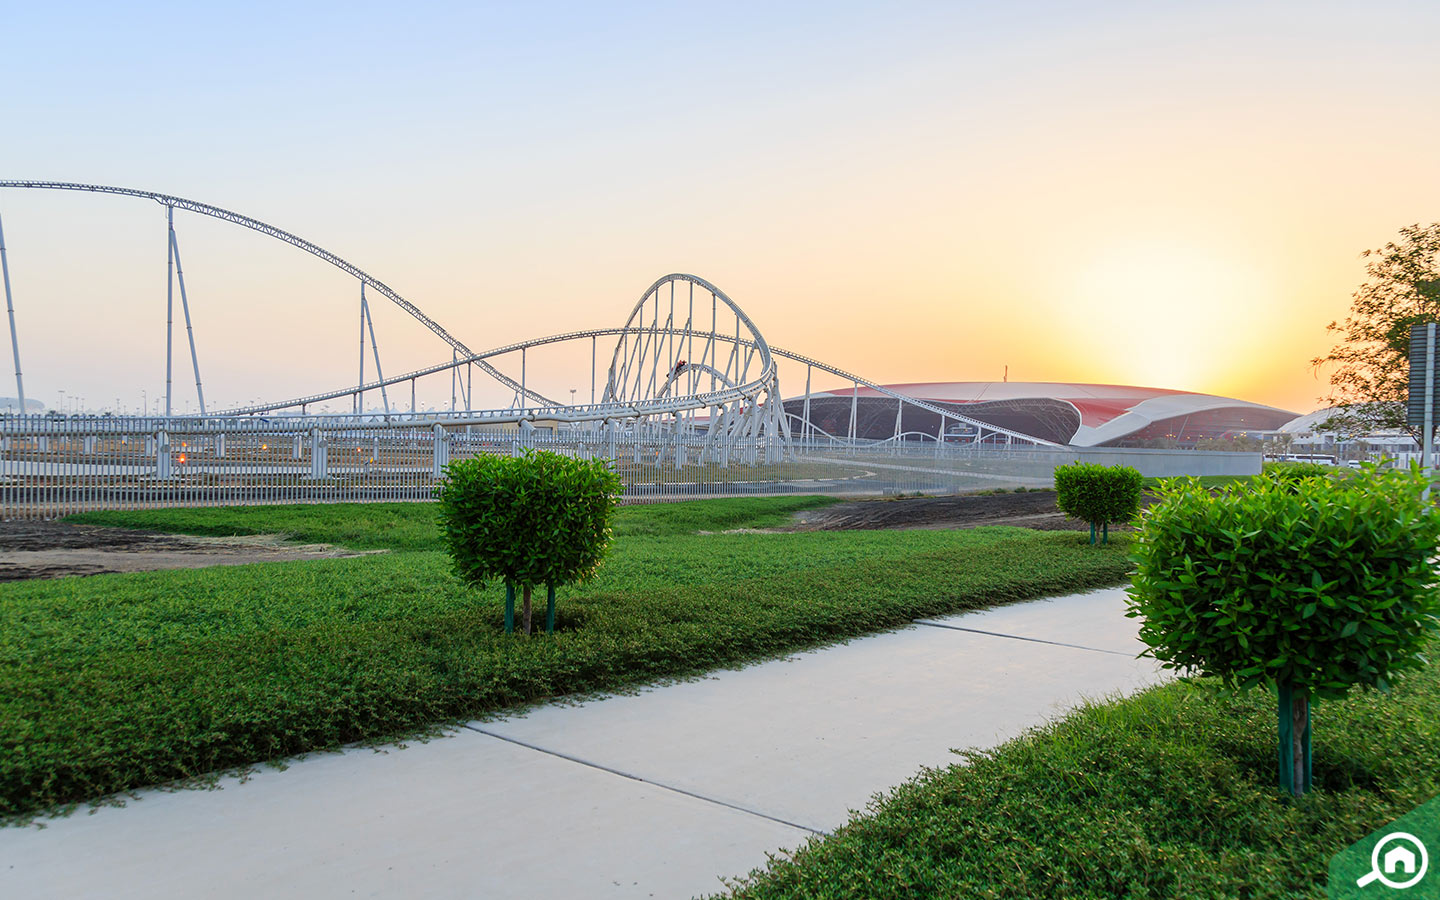 Things to consider about living on Yas Island